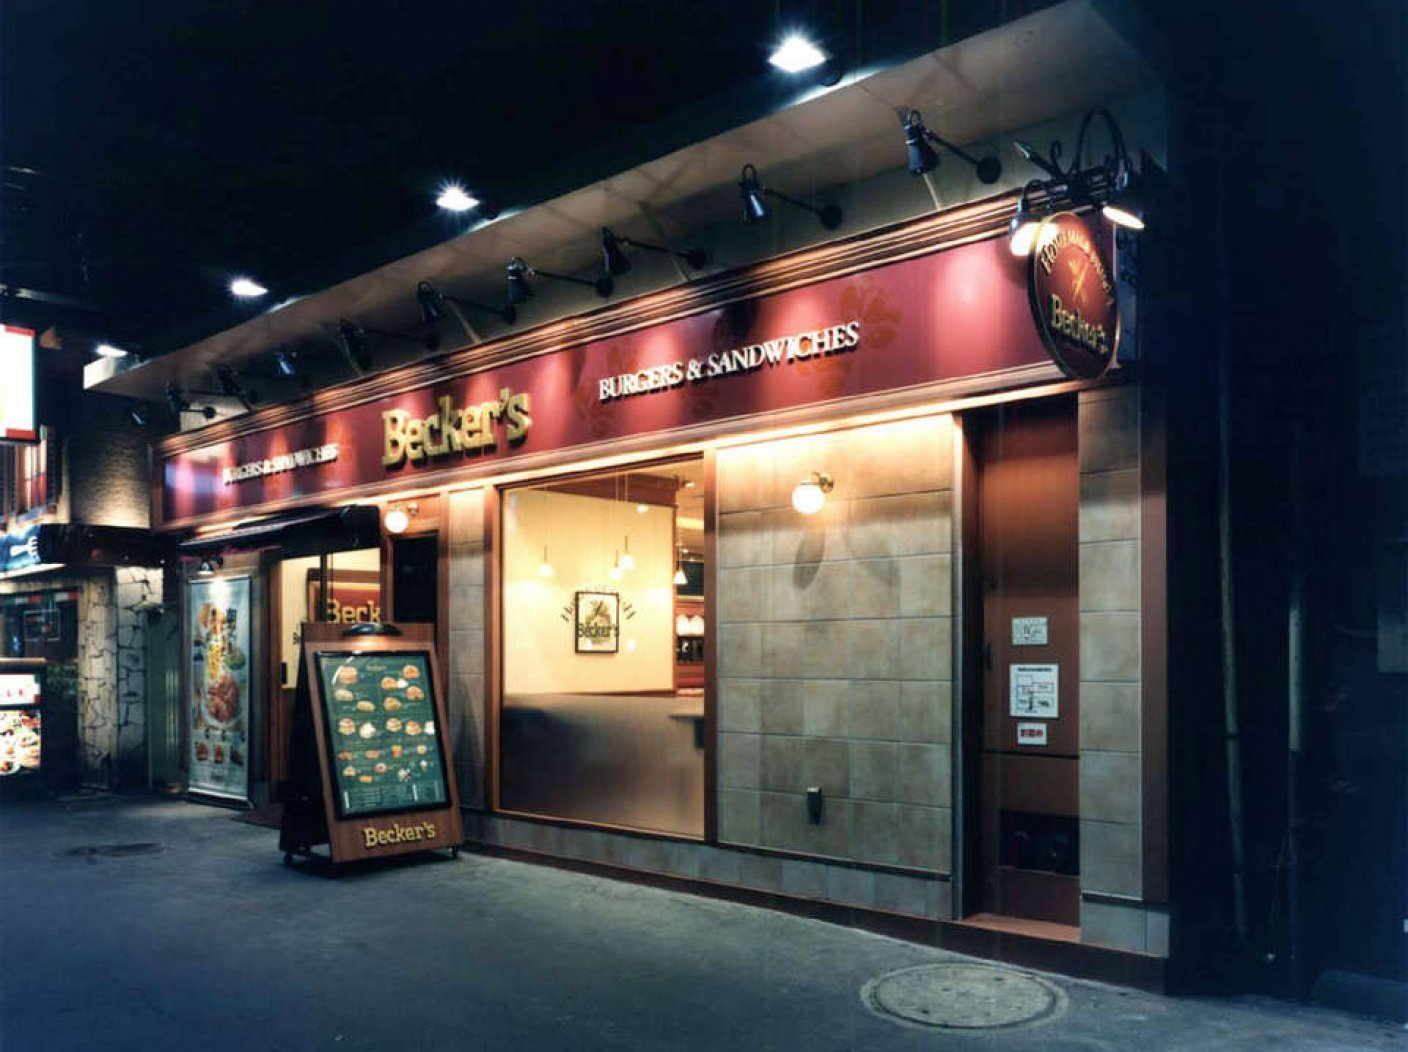 Beckers 日比谷店の写真 1